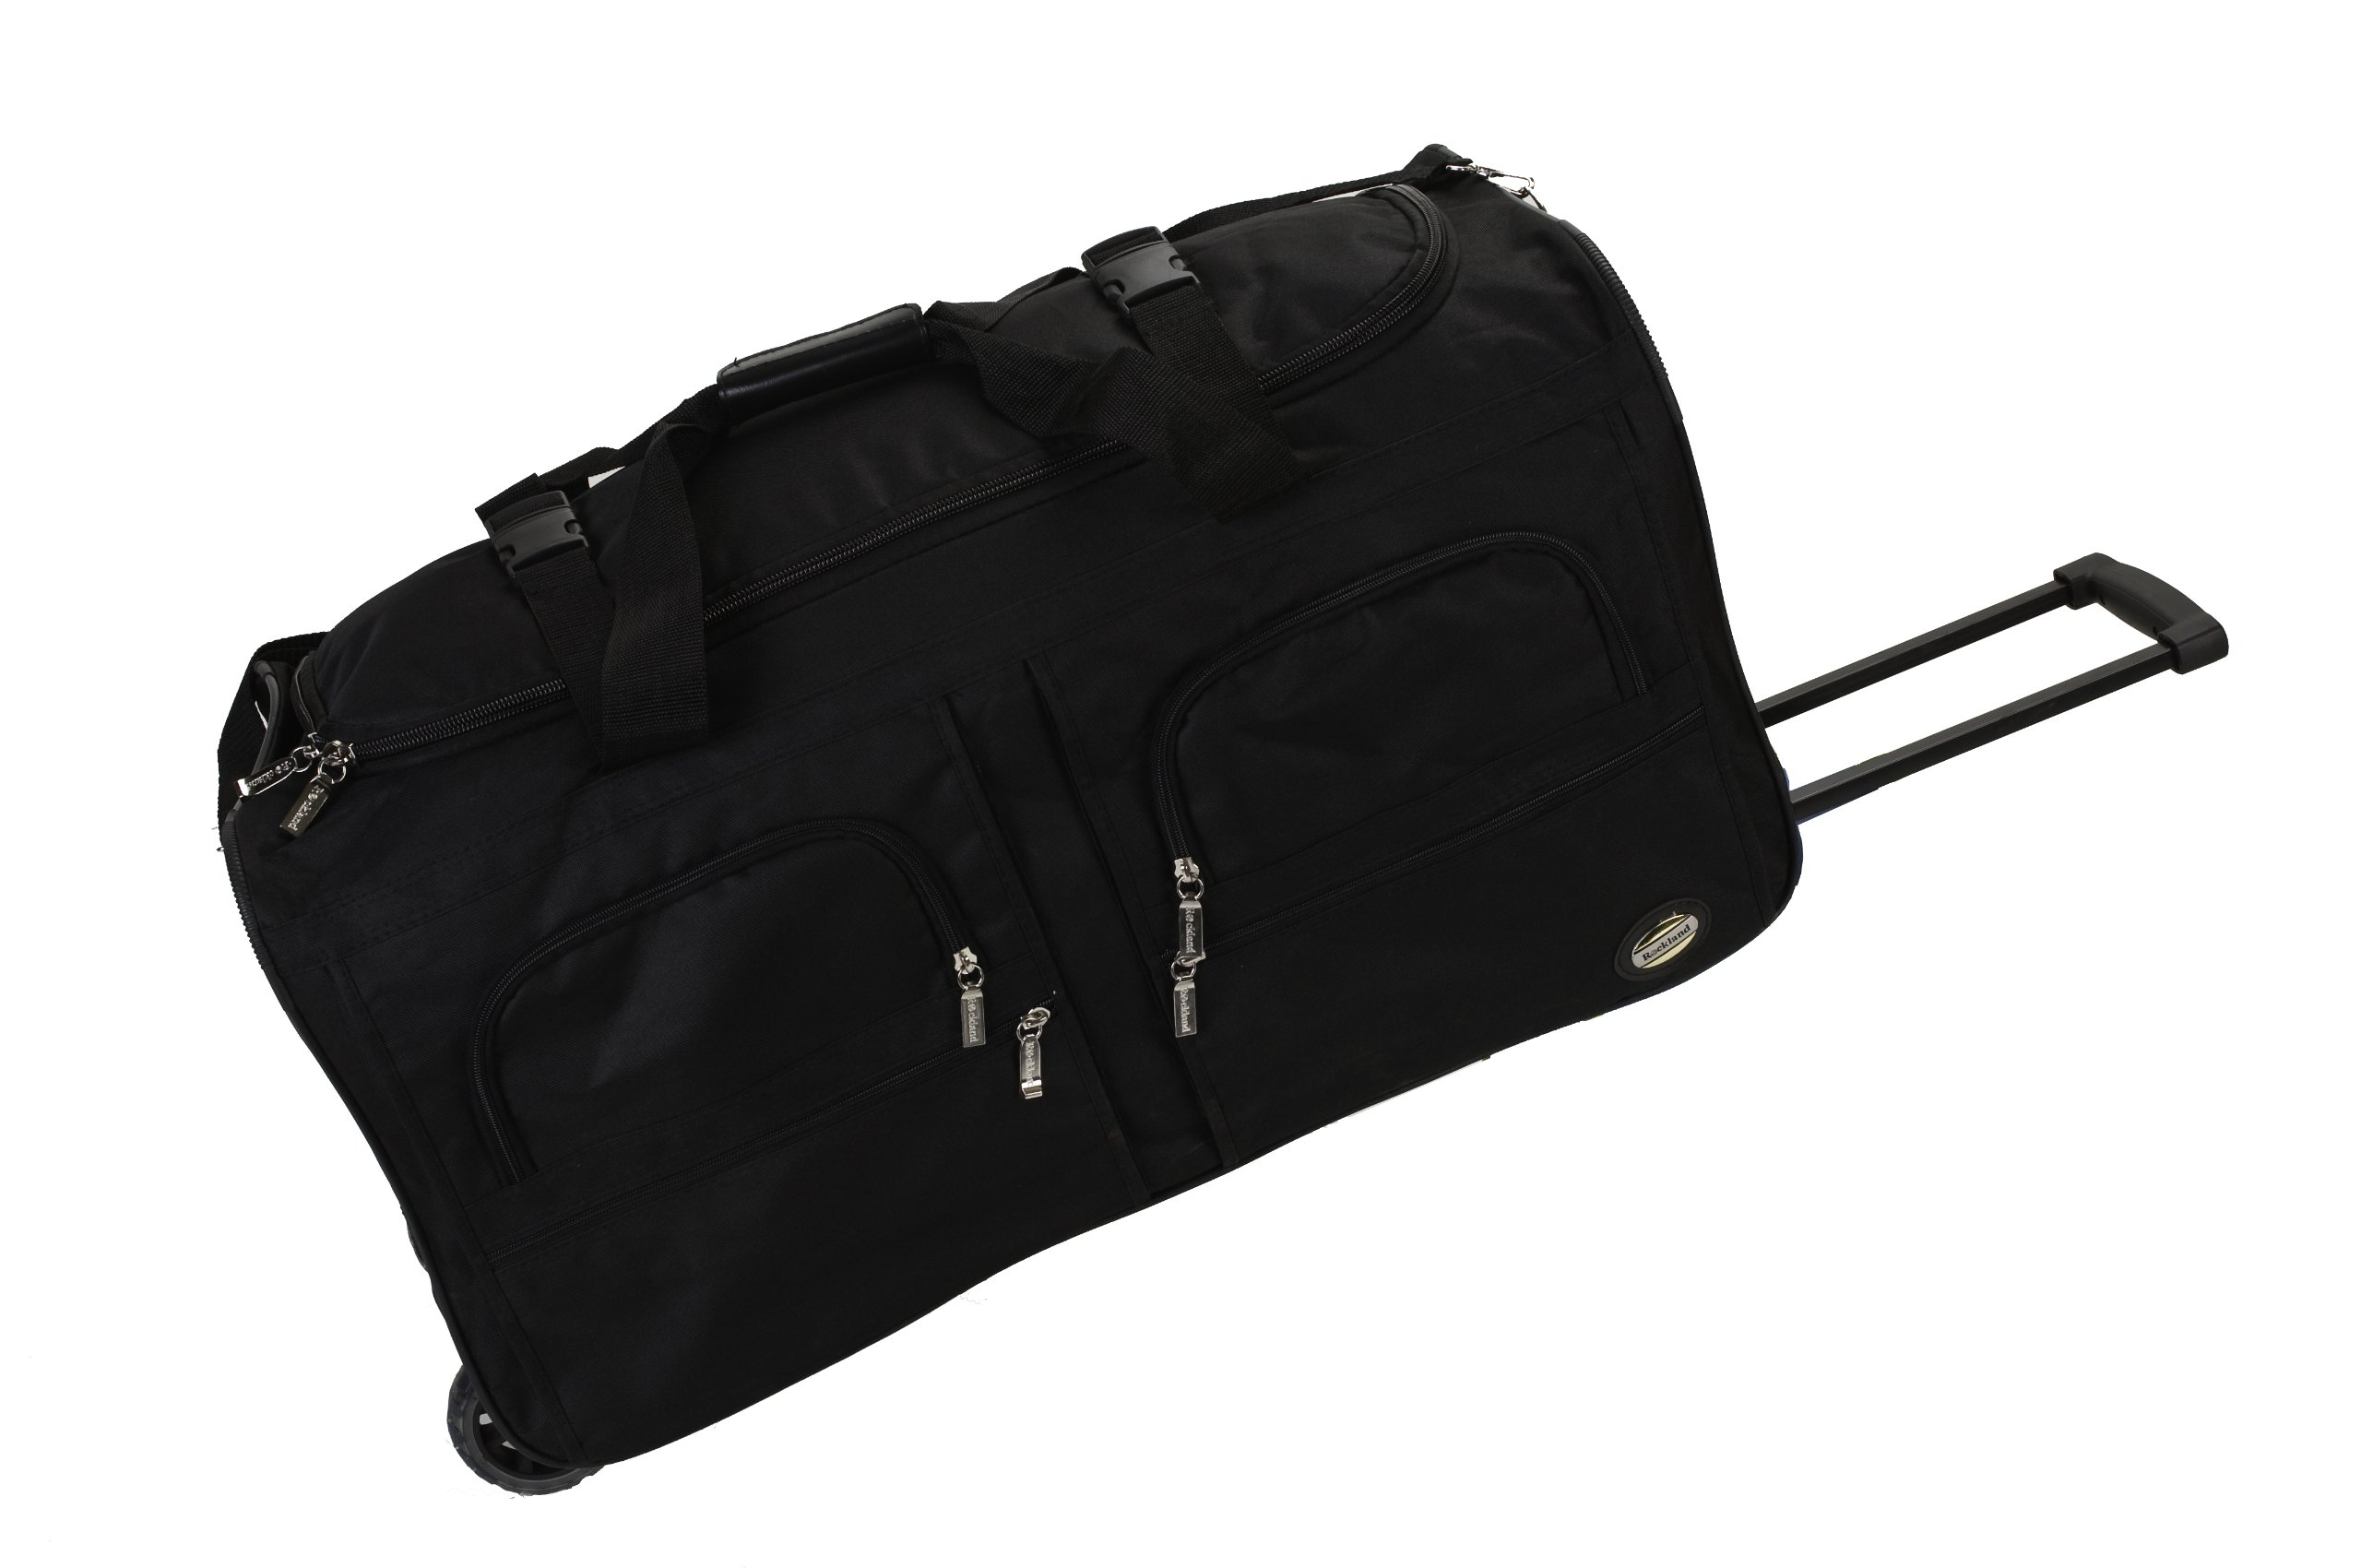 Rockland Luggage 36 Inch Rolling Duffle Bag, Black, Large by Rockland